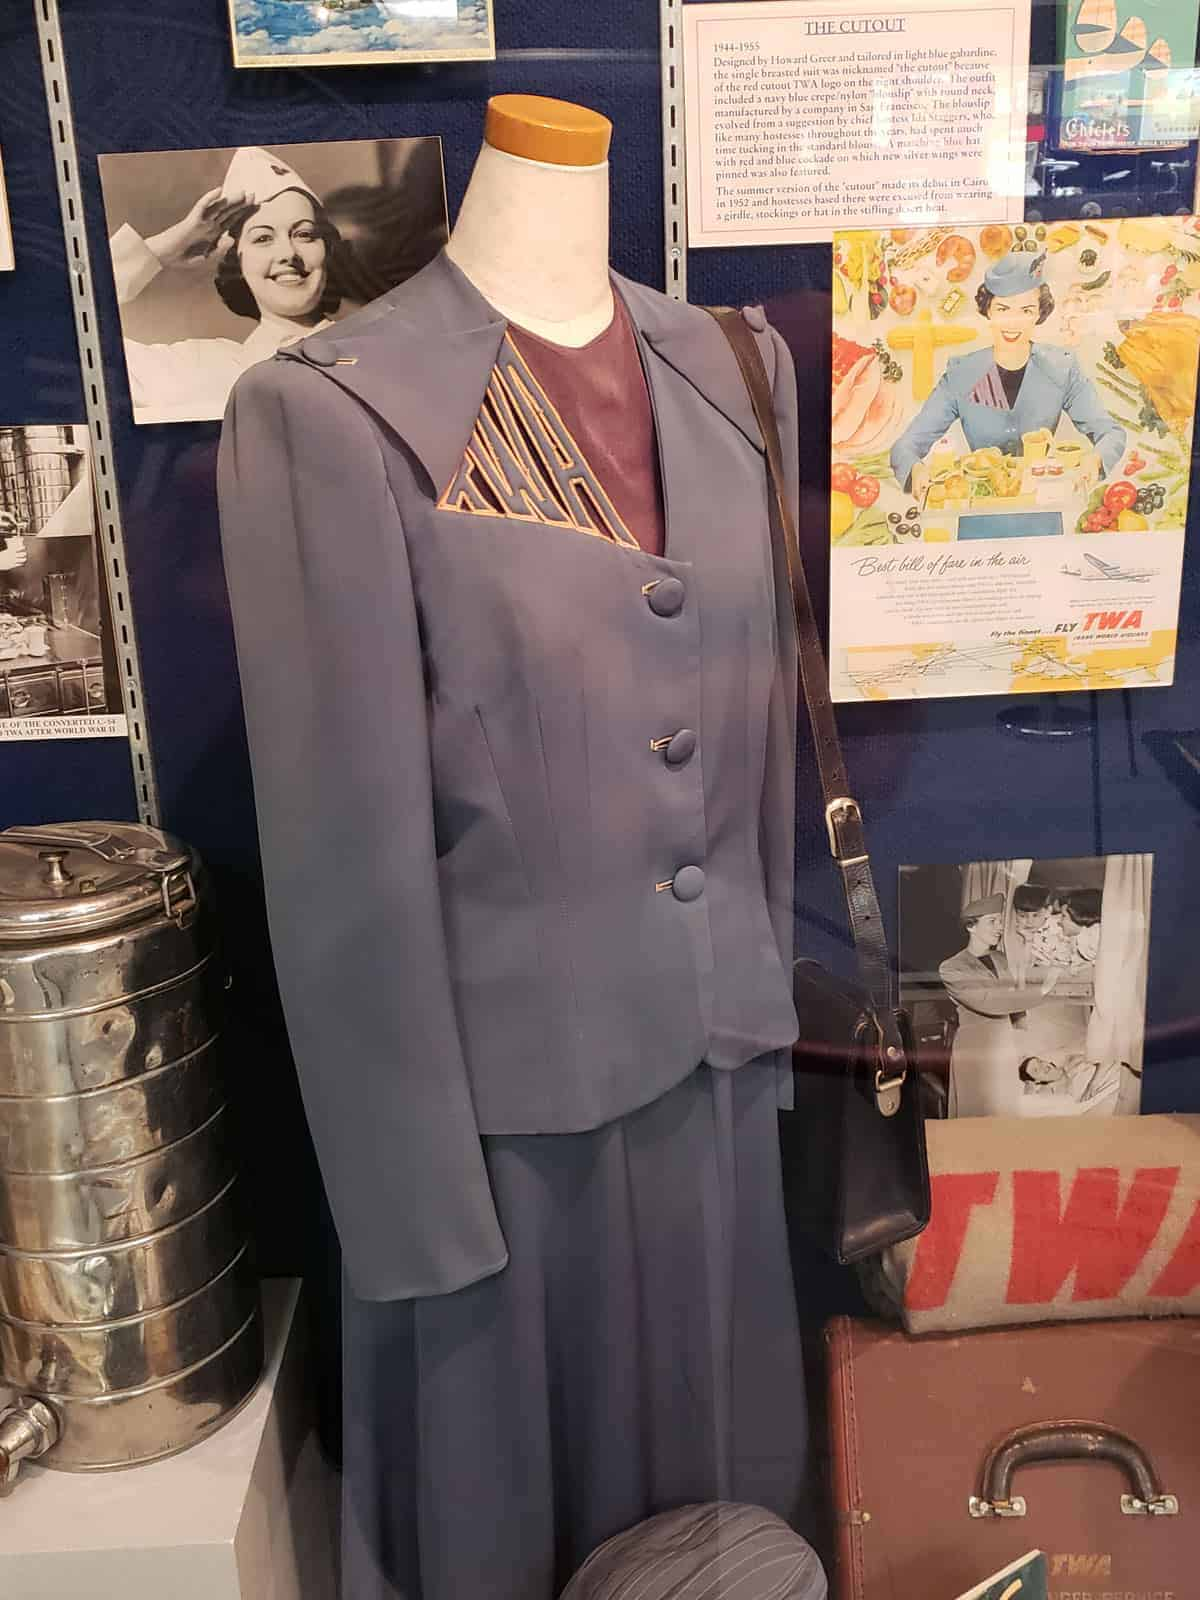 TWA hostess outfit